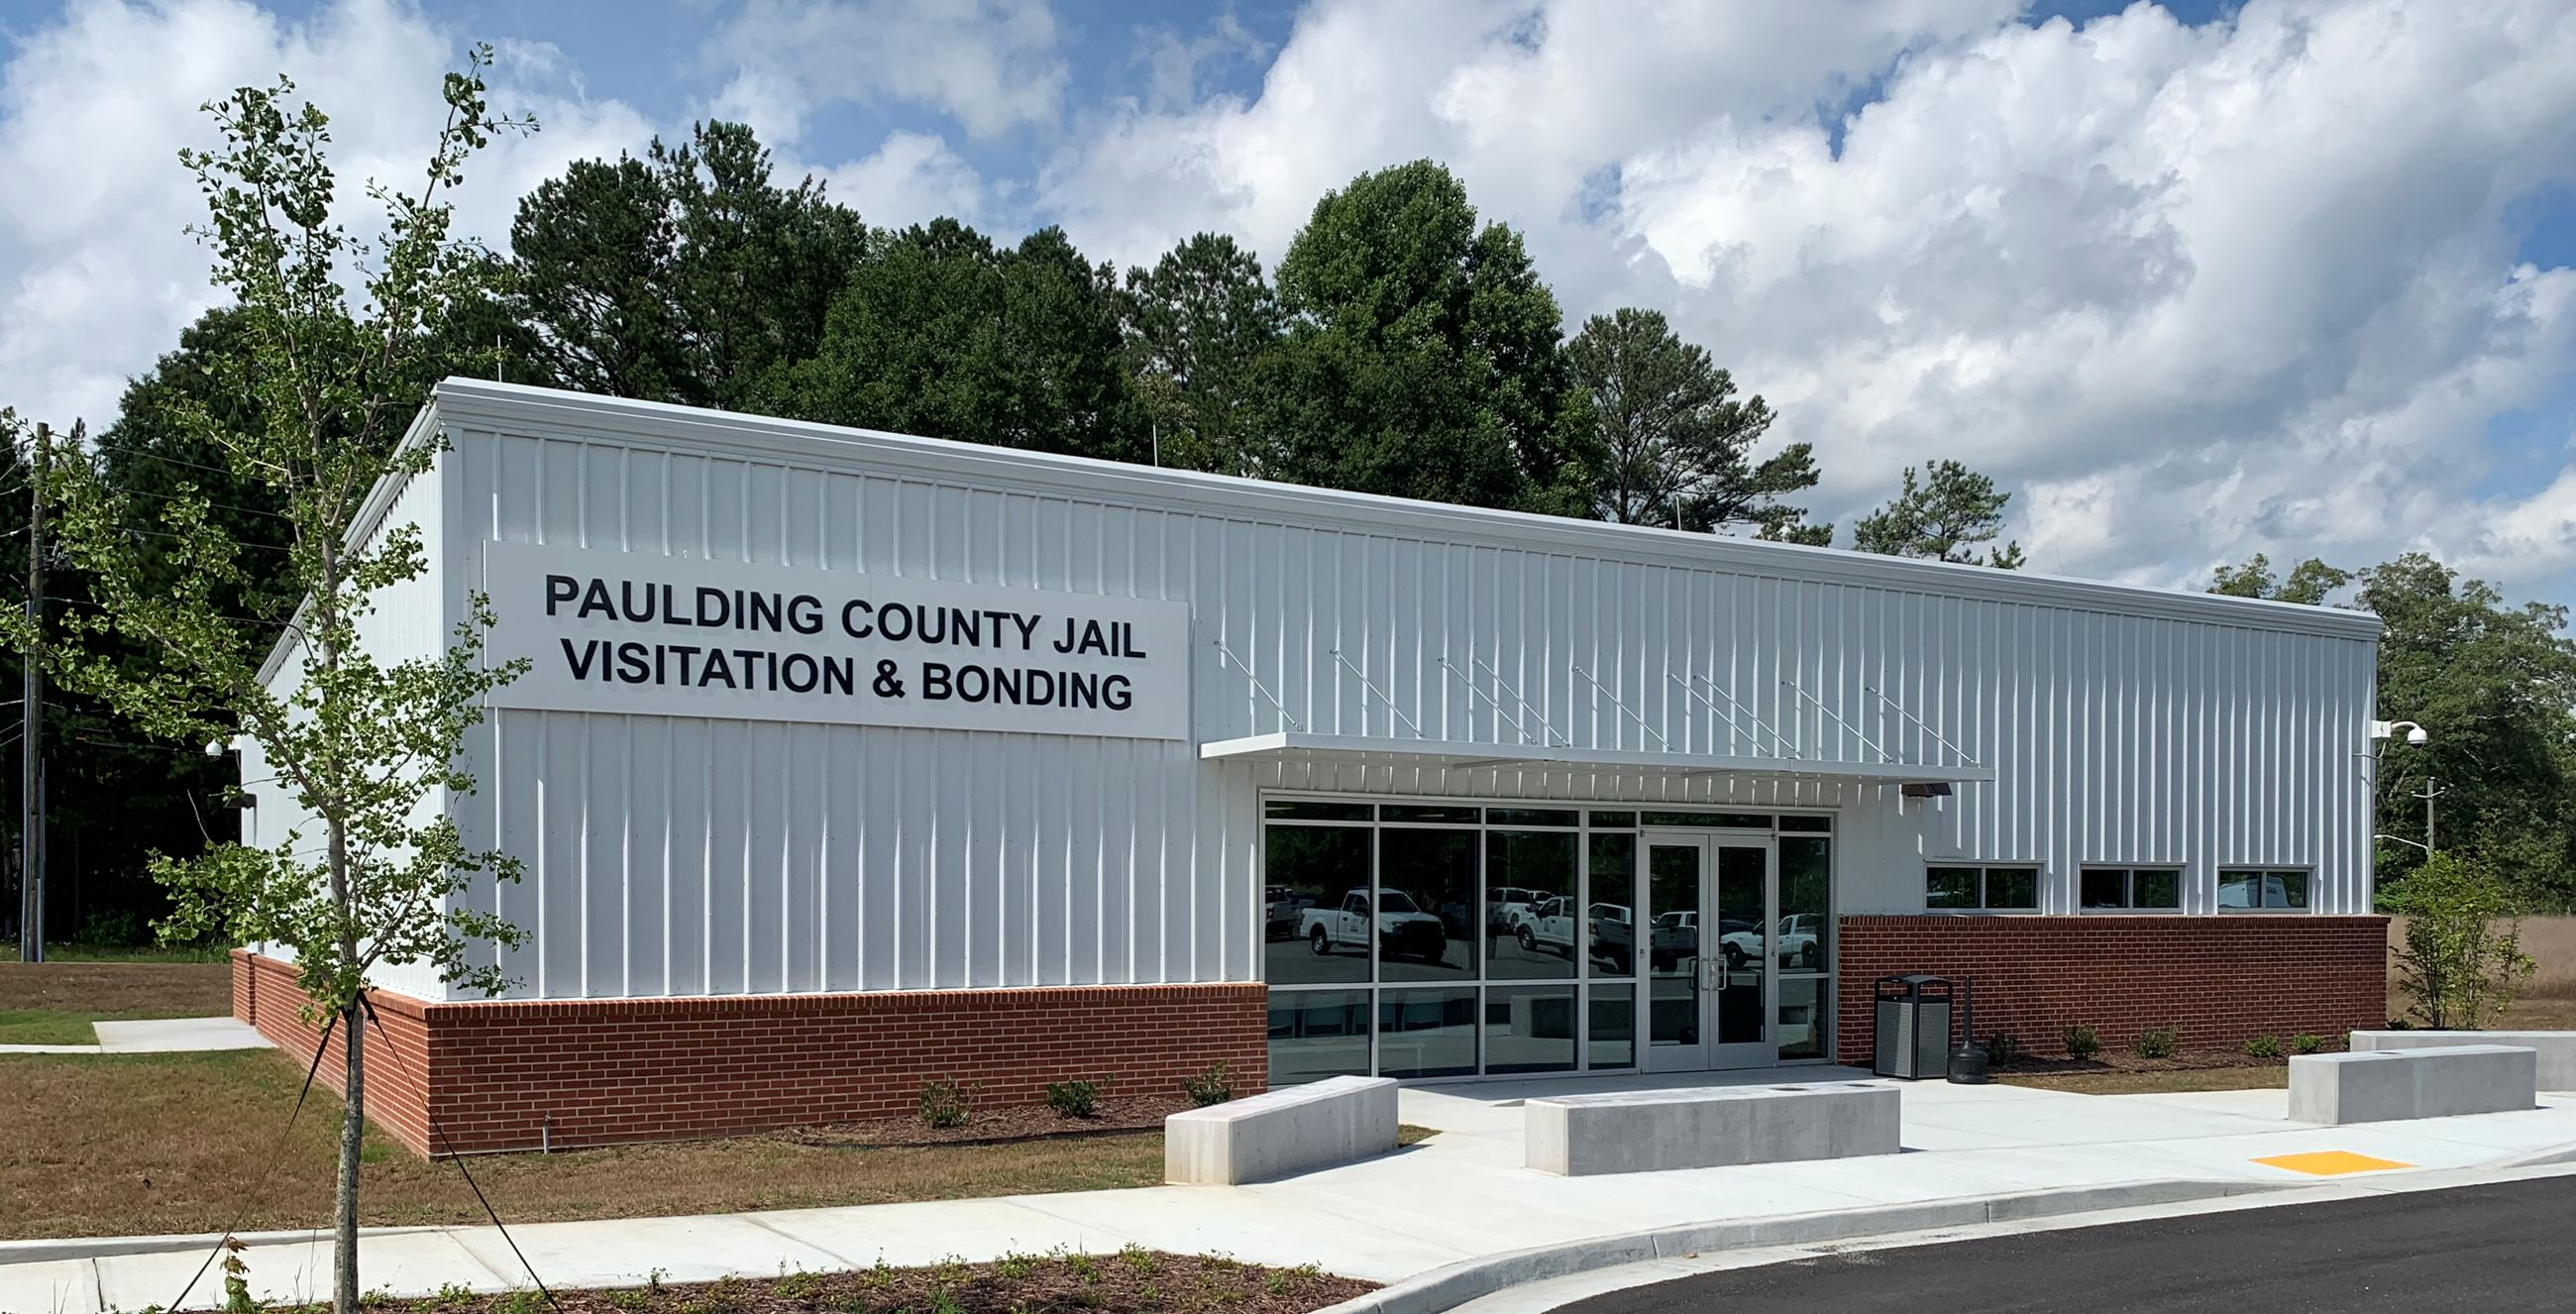 Jail Visitation and Bonding Center 2020